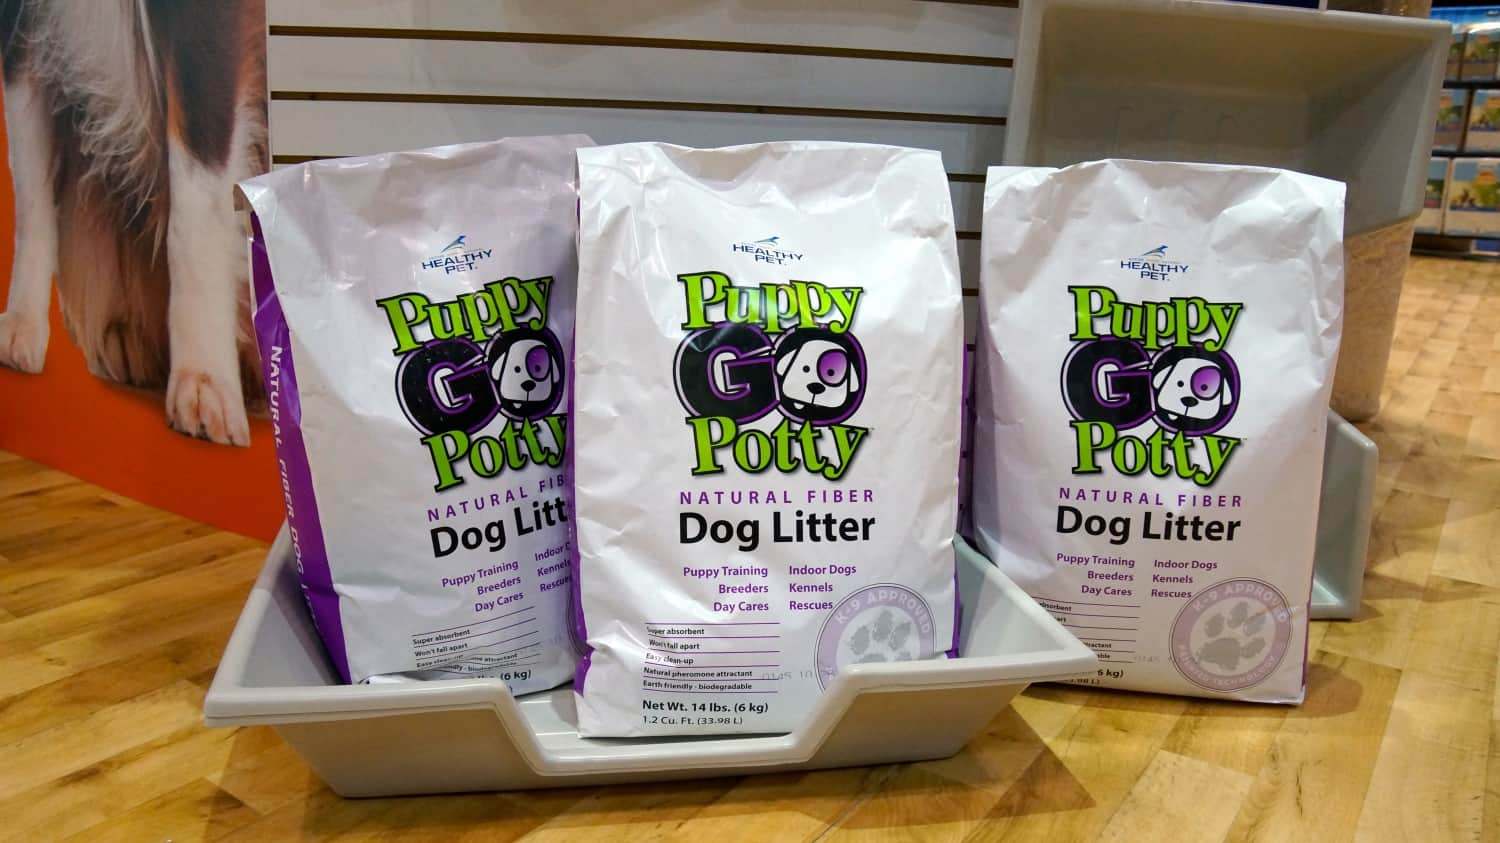 Puppy Go Potty at Global Pet Expo 2015 - Orlando, FL